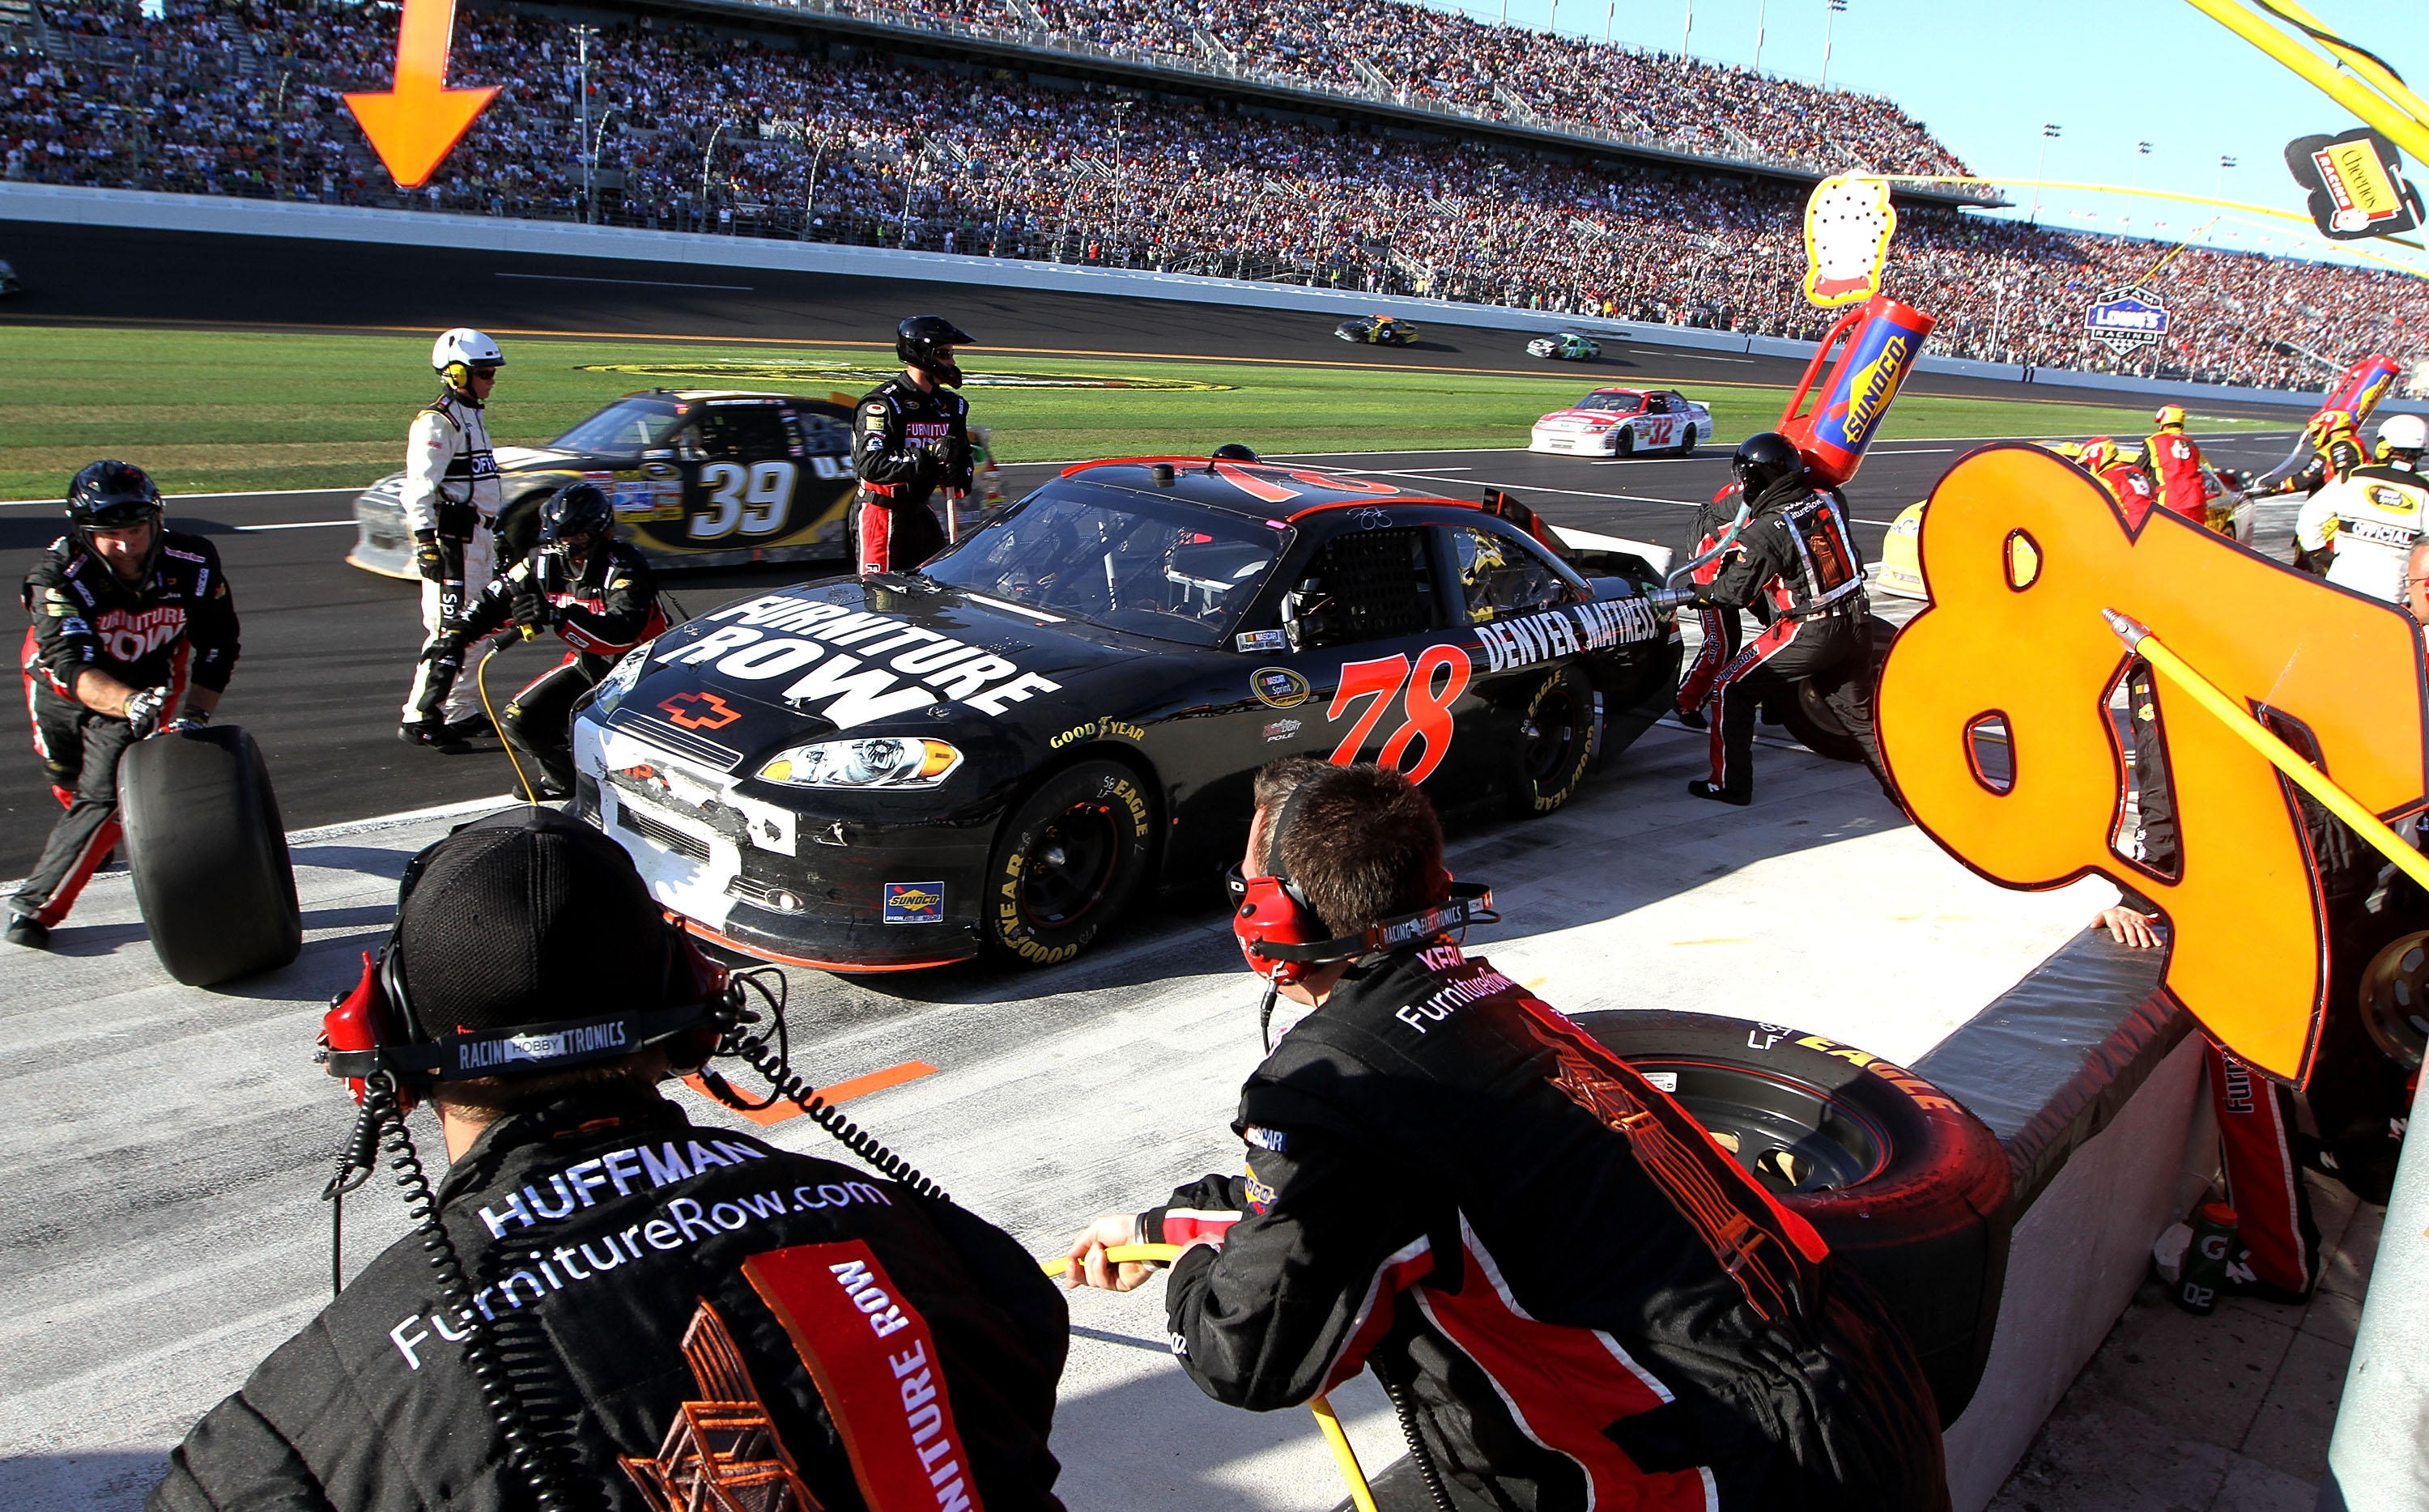 DAYTONA BEACH, FL - FEBRUARY 20:  Regan Smith pits the #78 Furniture Row Racing Chevrolet during the NASCAR Sprint Cup Series Daytona 500 at Daytona International Speedway on February 20, 2011 in Daytona Beach, Florida.  (Photo by Jerry Markland/Getty Ima